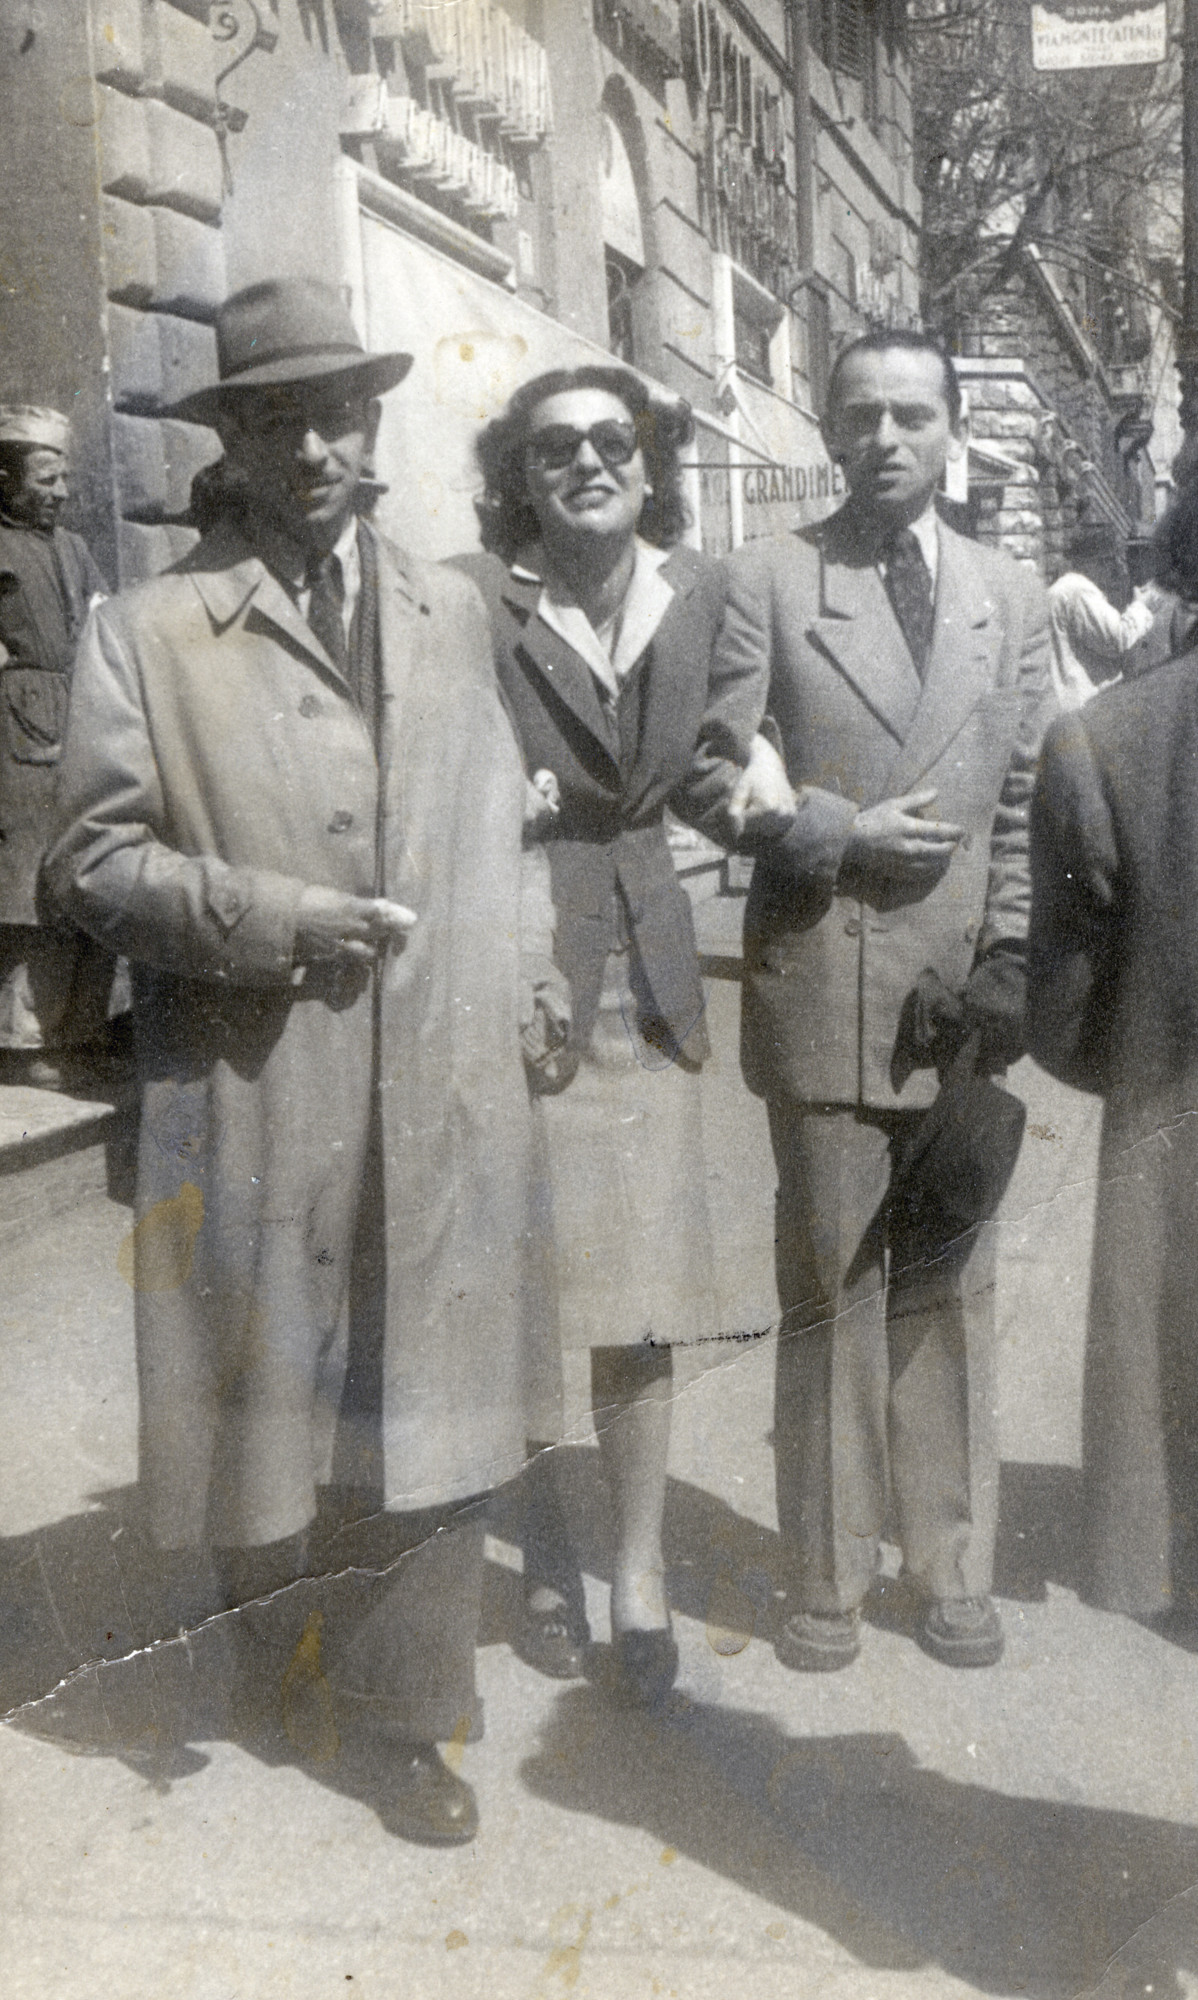 A Hungarian Jewish member of the Italian underground poses wtih friends in the Piazza Barberini in Rome.    Among those pictured is Stefan Honig (left?).